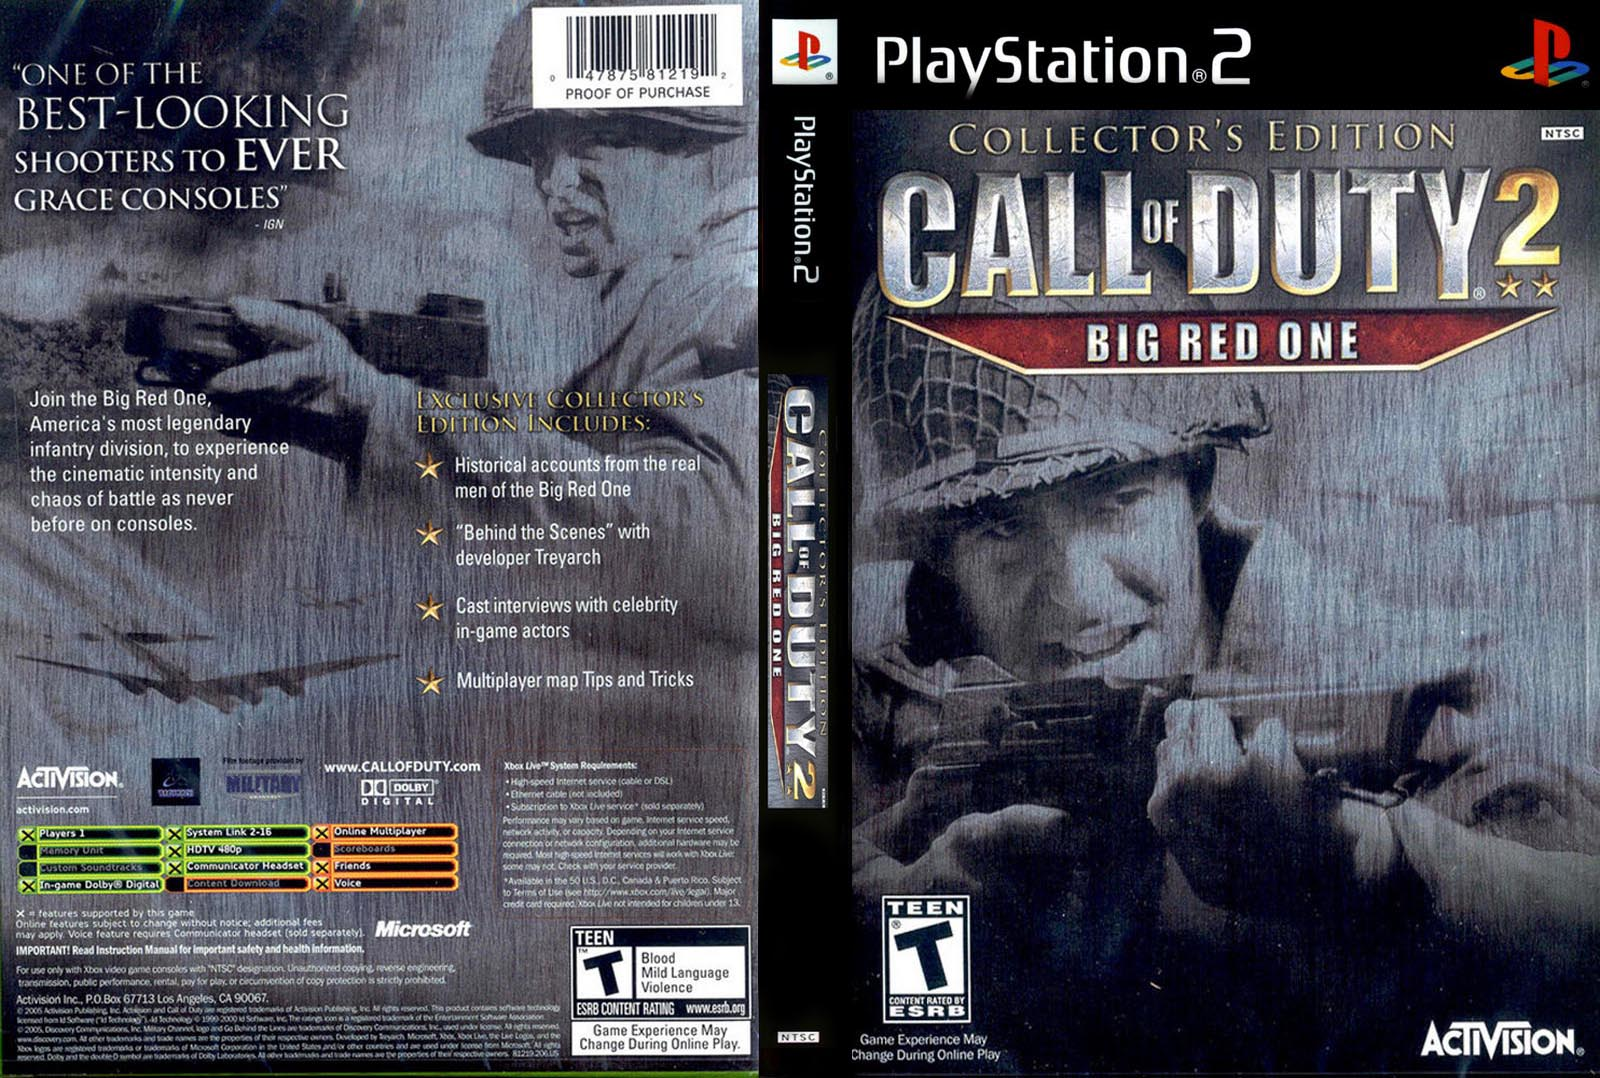 Call of Duty 2 - Big Red One - Collector's Edition (USA) ISO